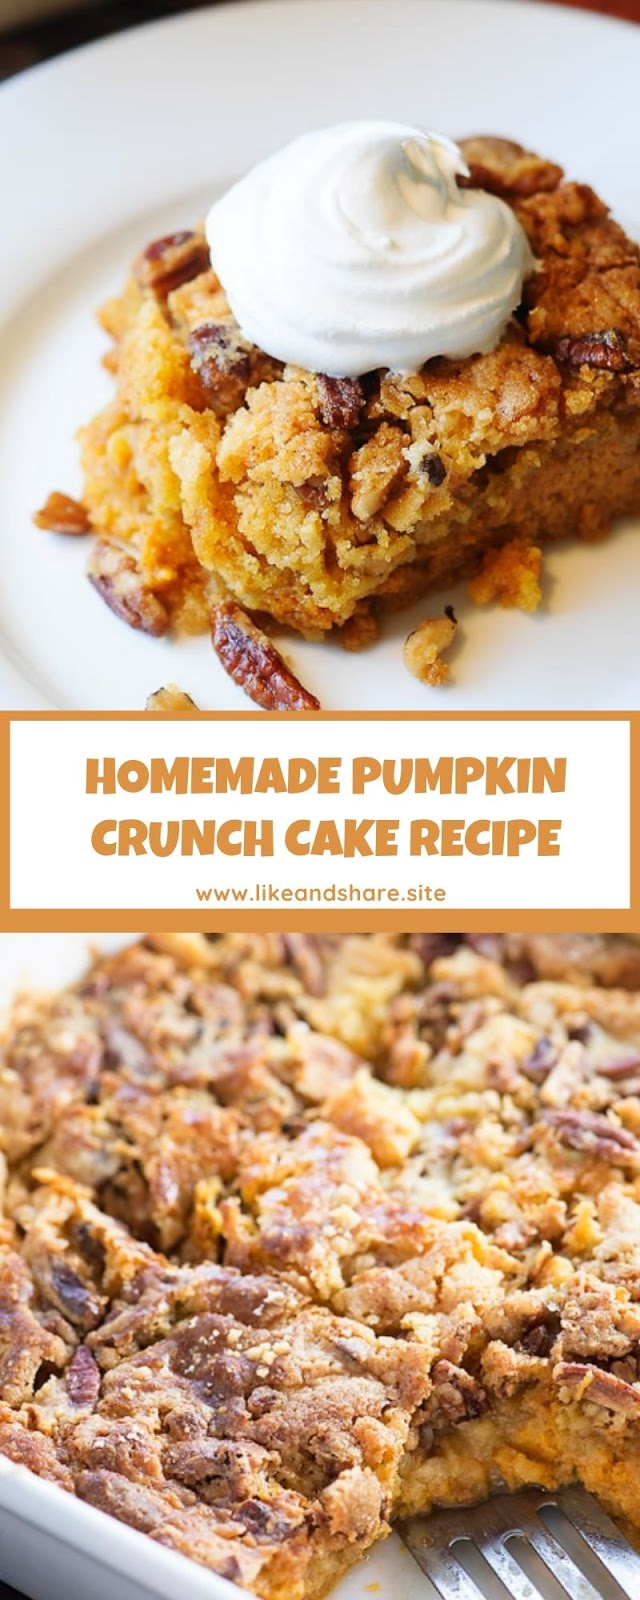 HOMEMADE PUMPKIN CRUNCH CAKE RECIPE